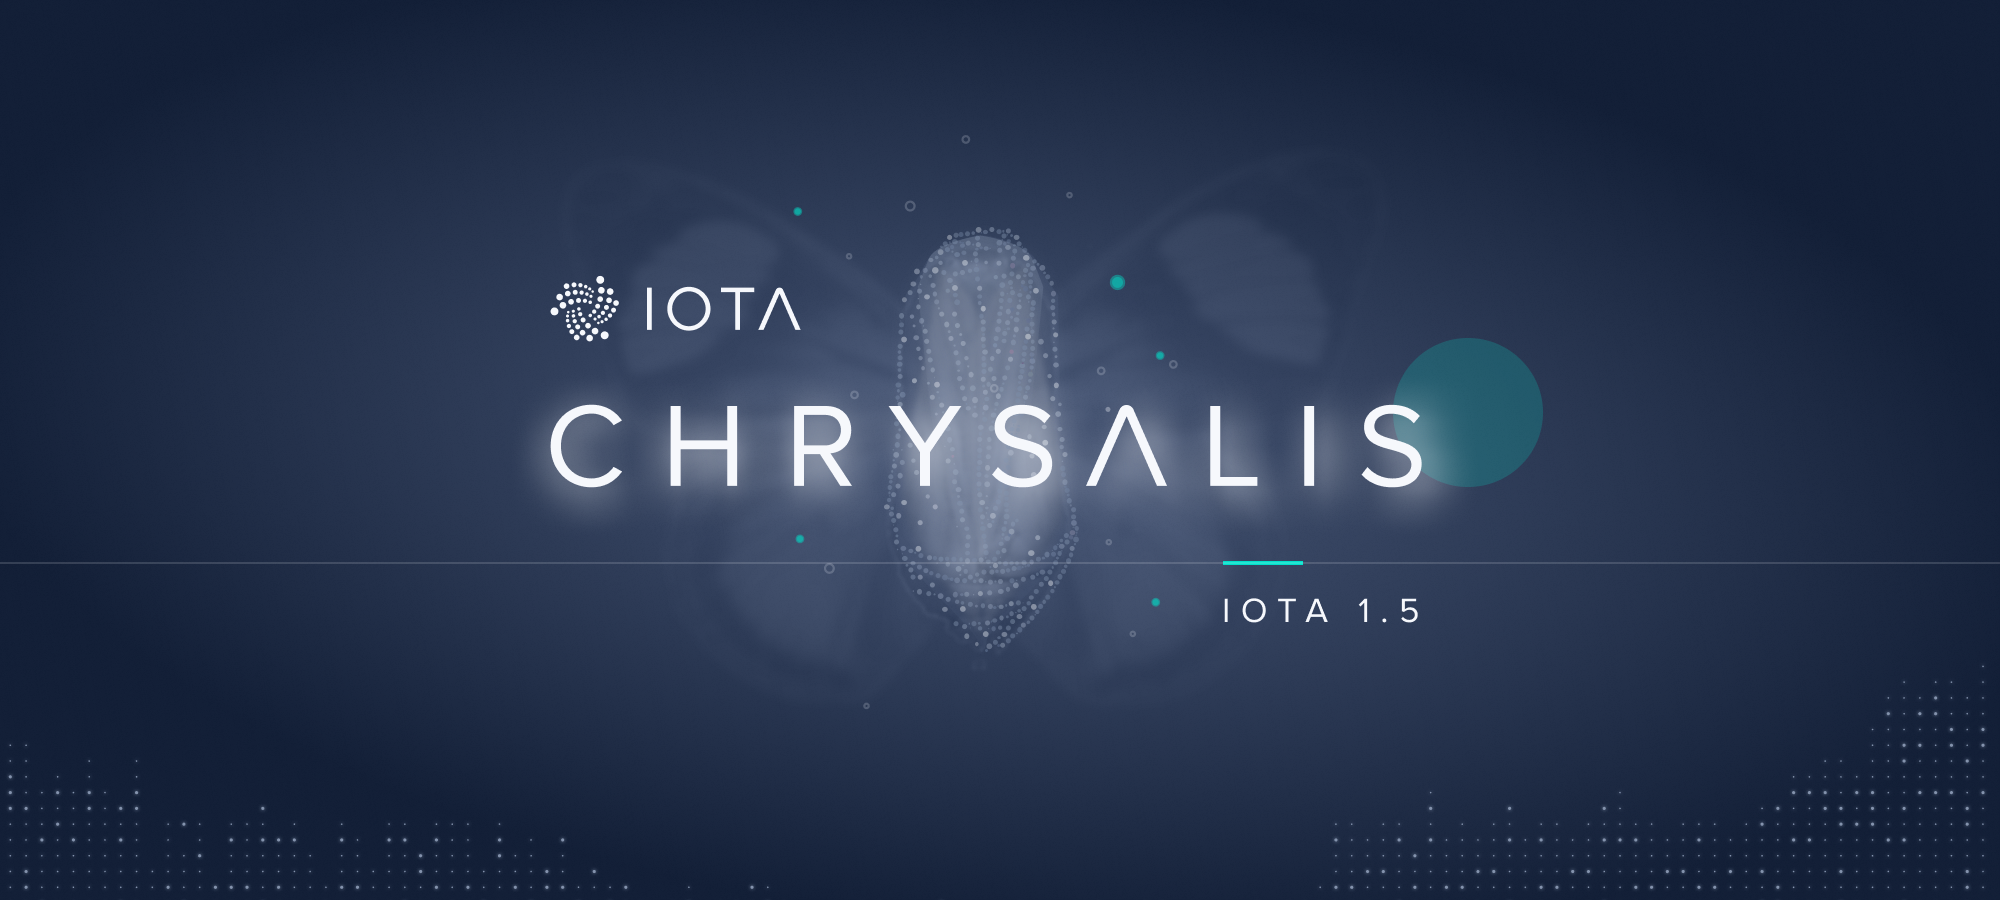 What is Chrysalis? IOTA is ready for a major milestone with the launch of the Chrysalis phase 2 on April 28th, 2021 - AZCoin News